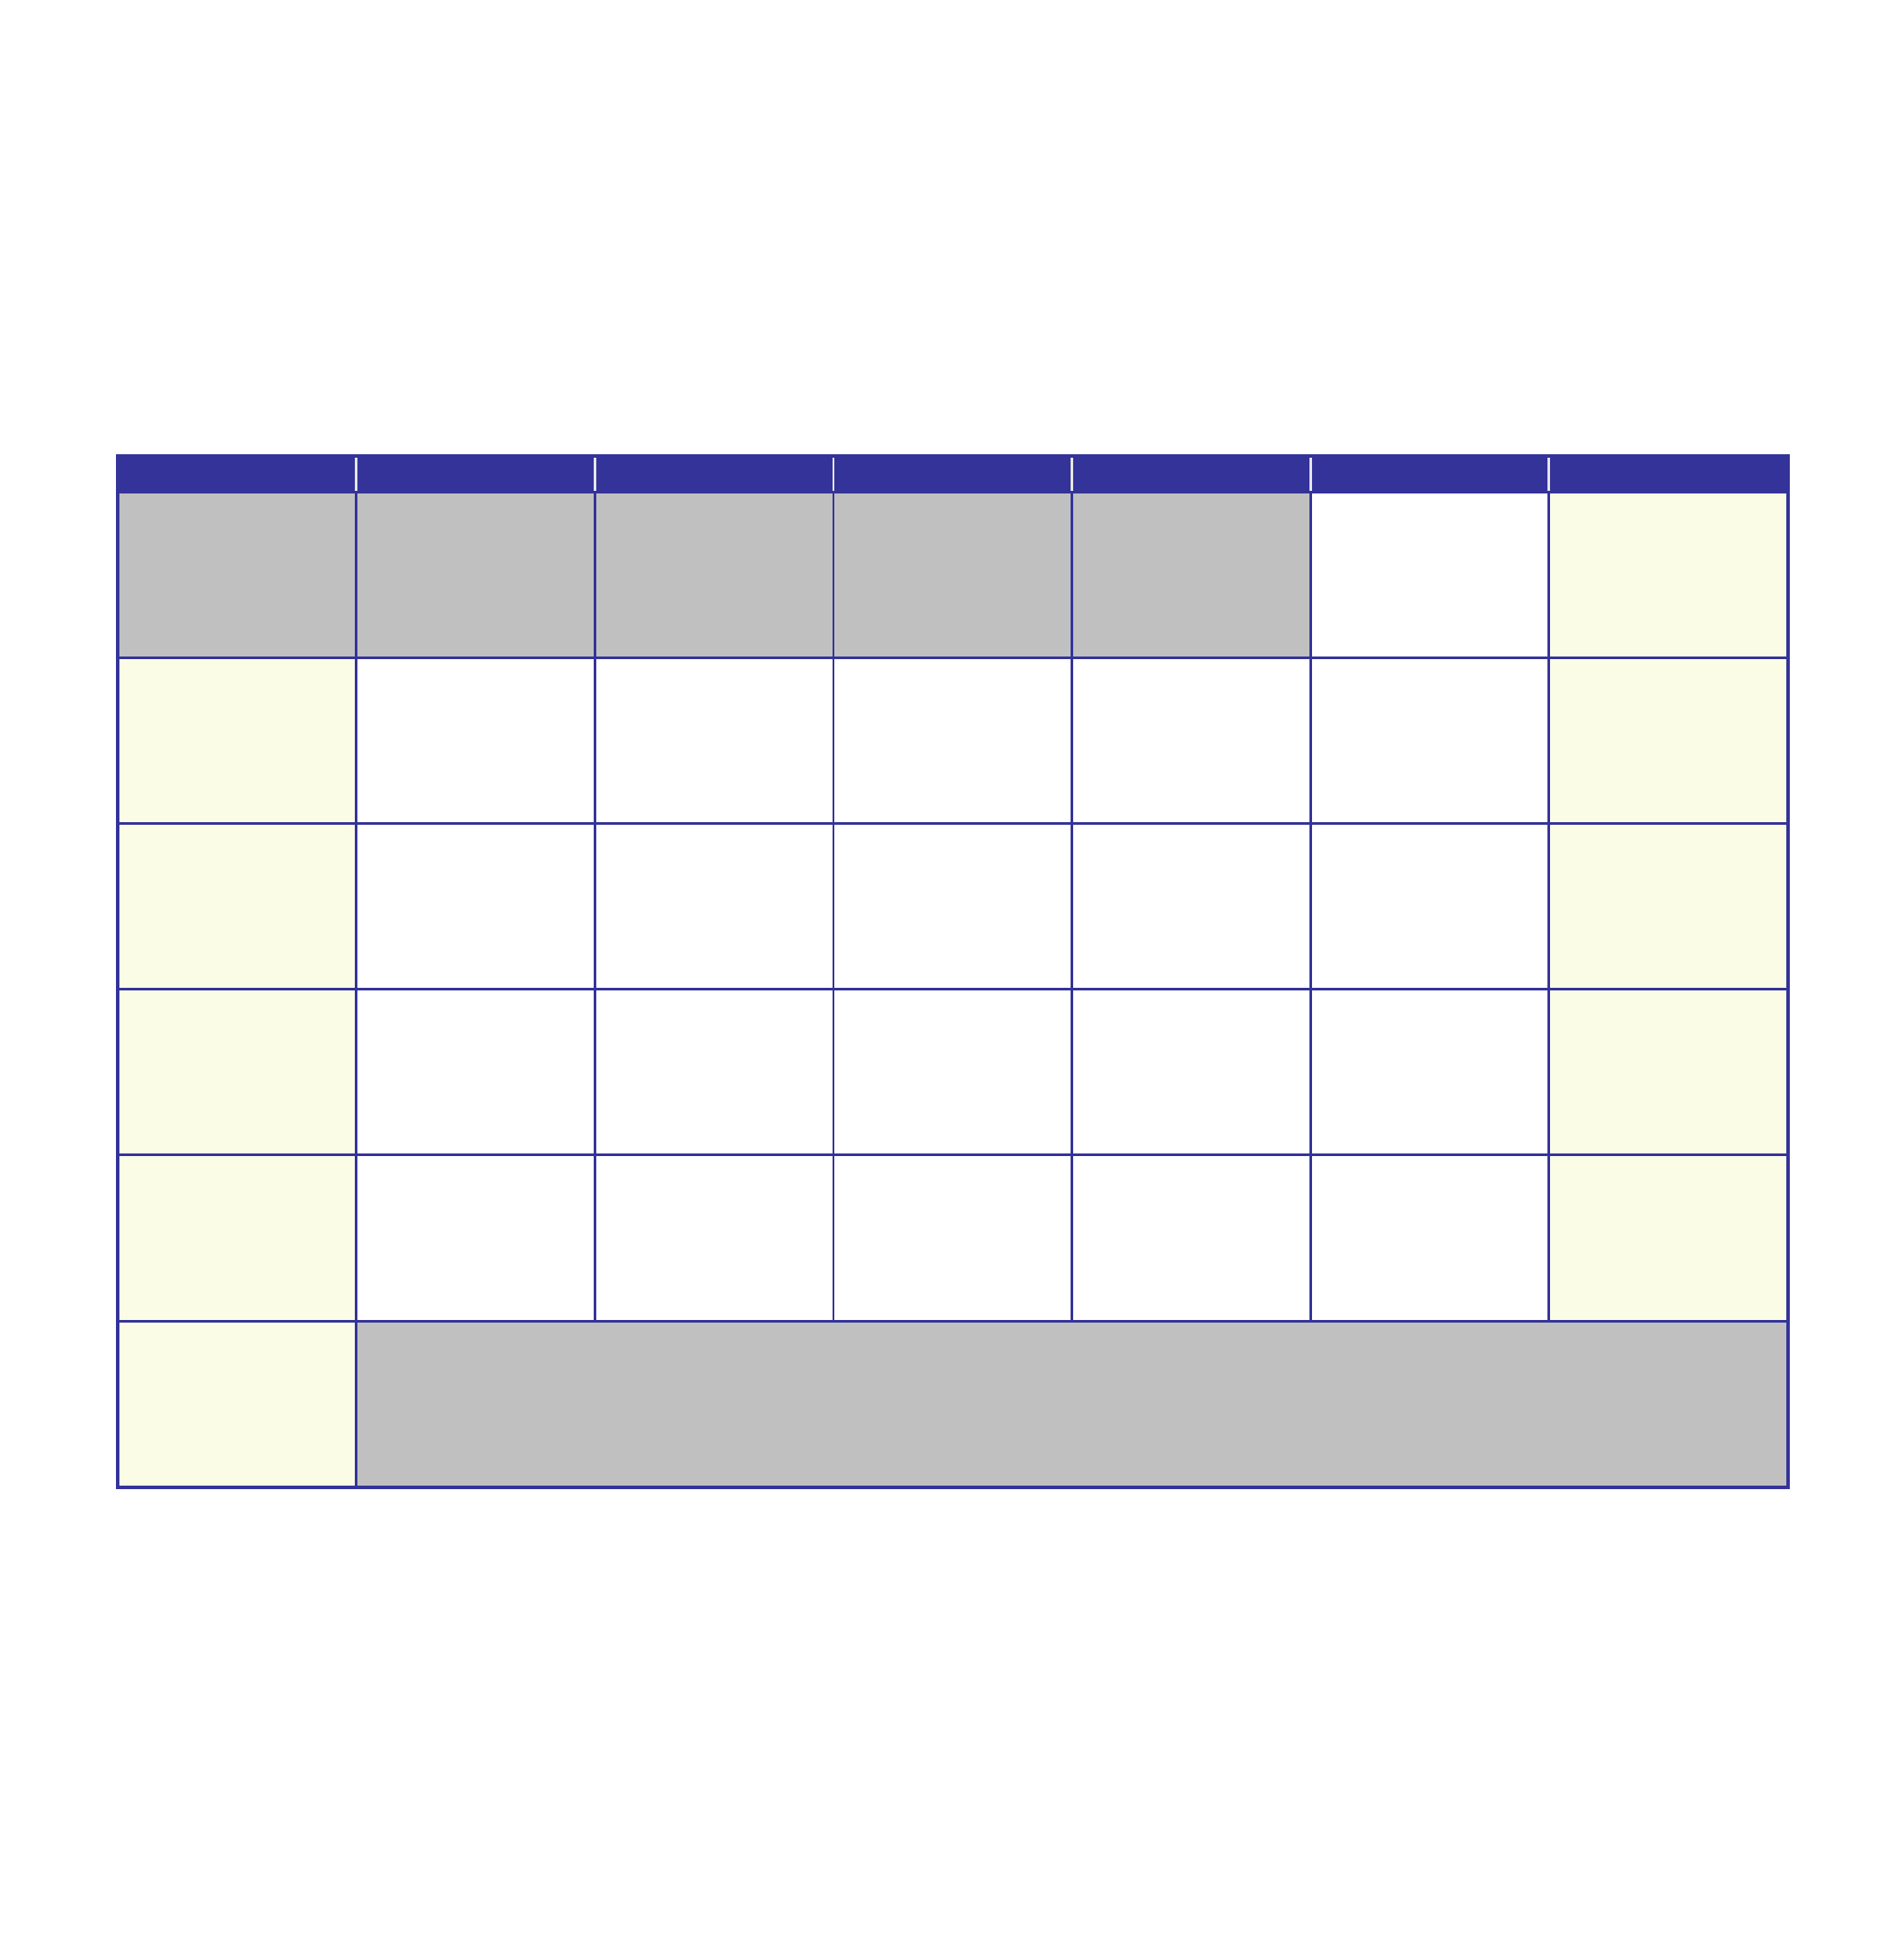 May 2015 Calendar Template - Edit, Fill, Sign Online   Handypdf within Calendar To Fill Online